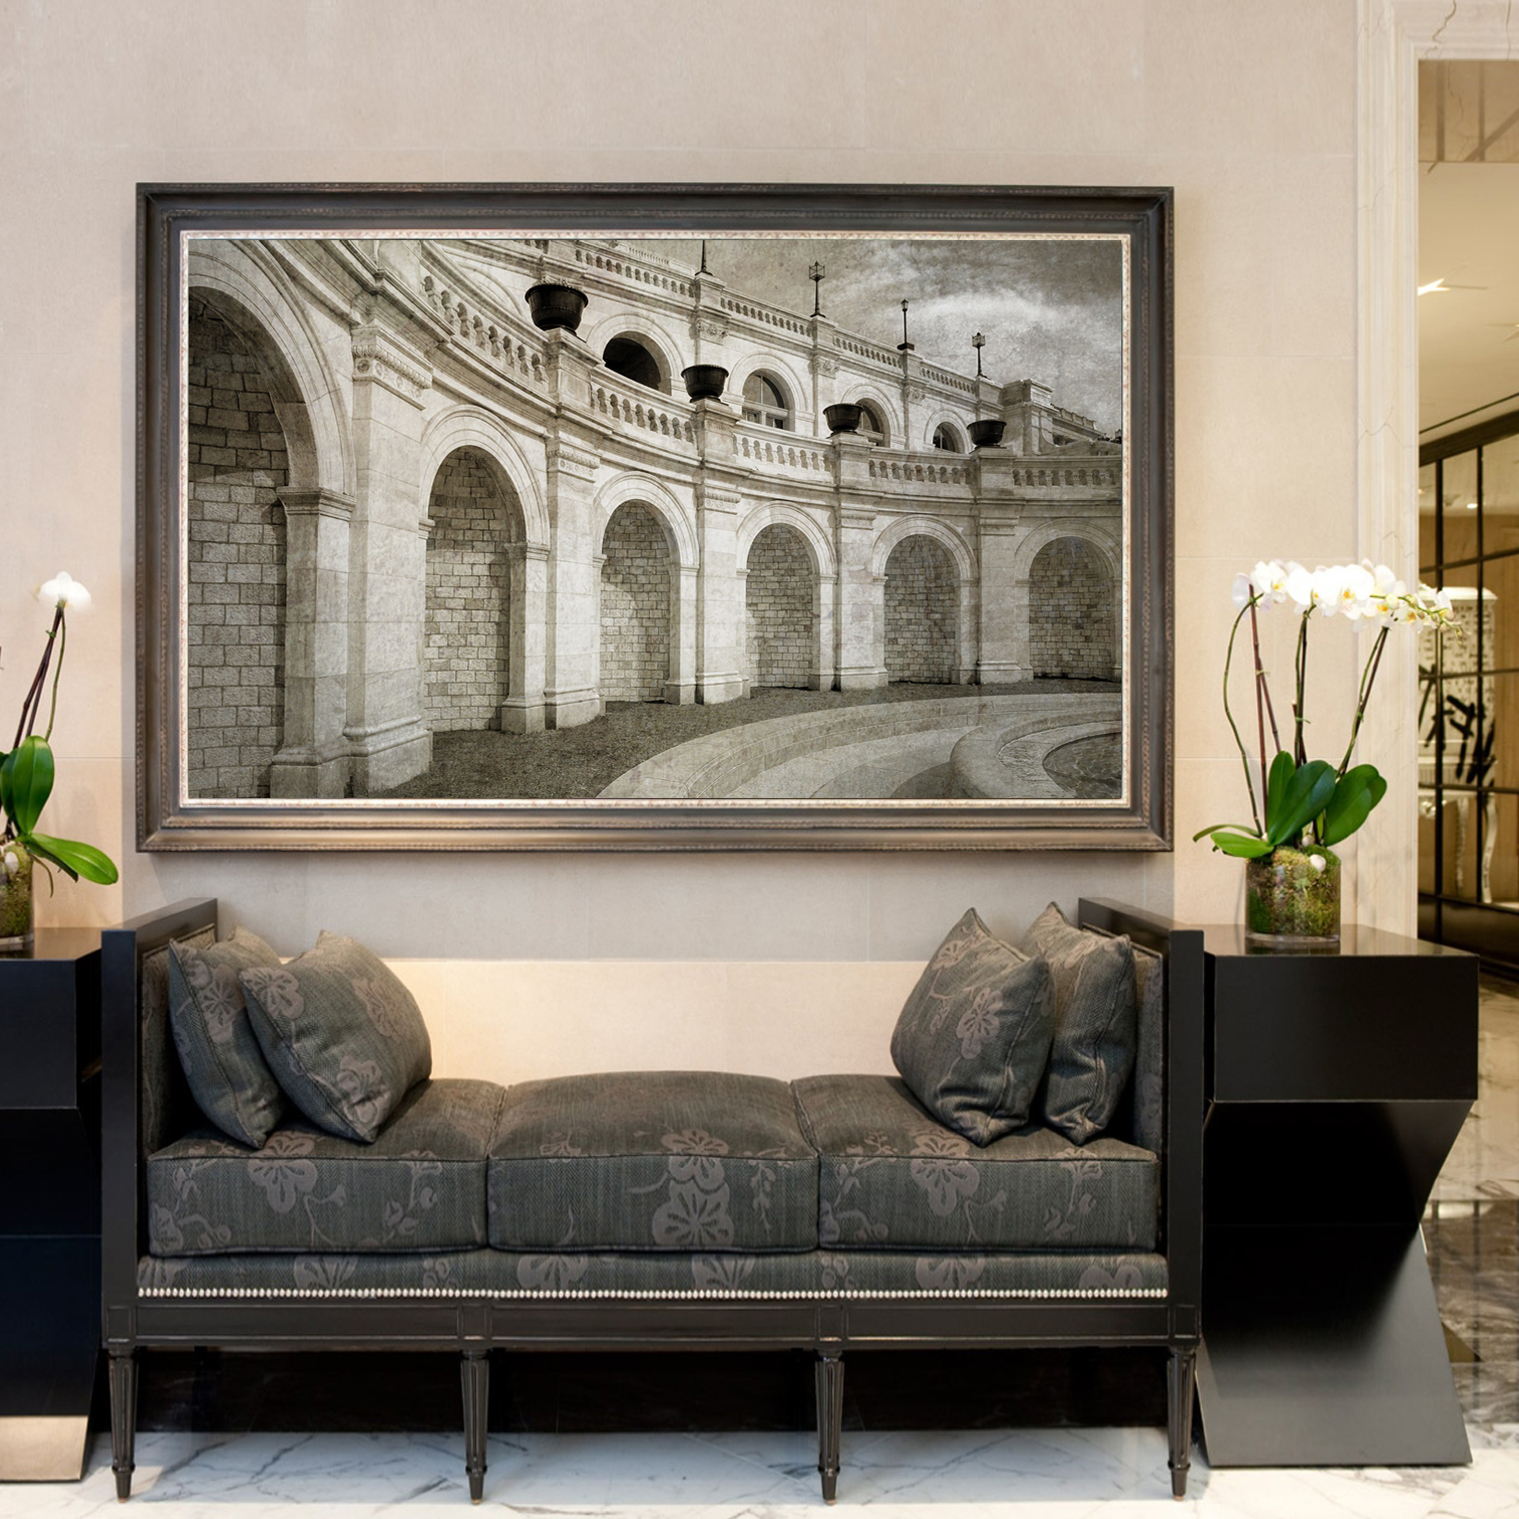 Capitol arches in lobby